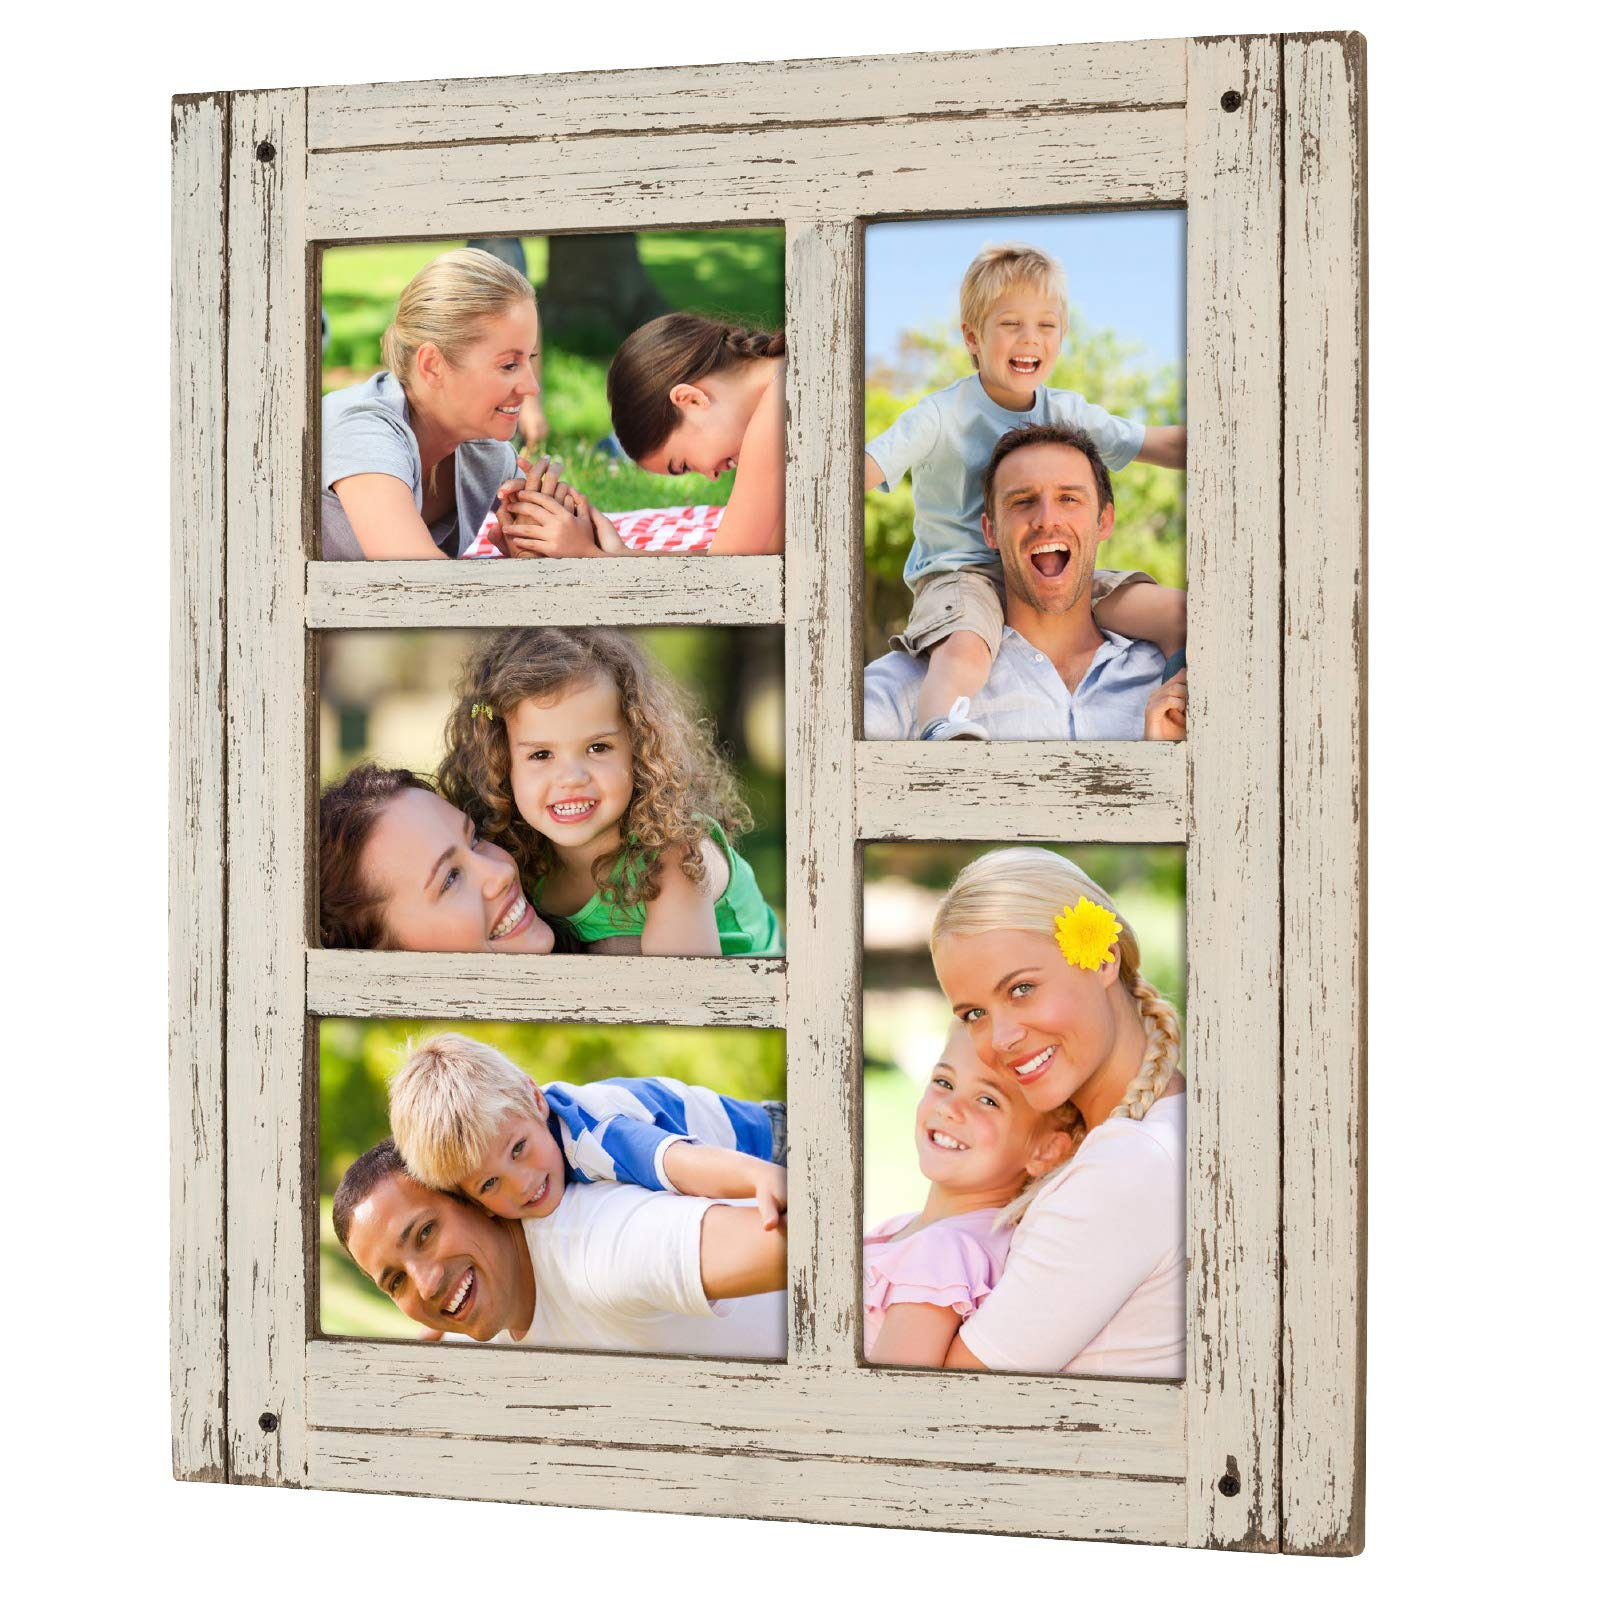 Collage Picture Frames from Rustic Distressed Wood: Holds Five 4x6 Photos: Ready to Hang or use Tabletop. Shabby Chic, Driftwood, Barnwood, Farmhouse, Reclaimed Wood Picture Frame Collage (White) by Excello Global Products (Image #1)